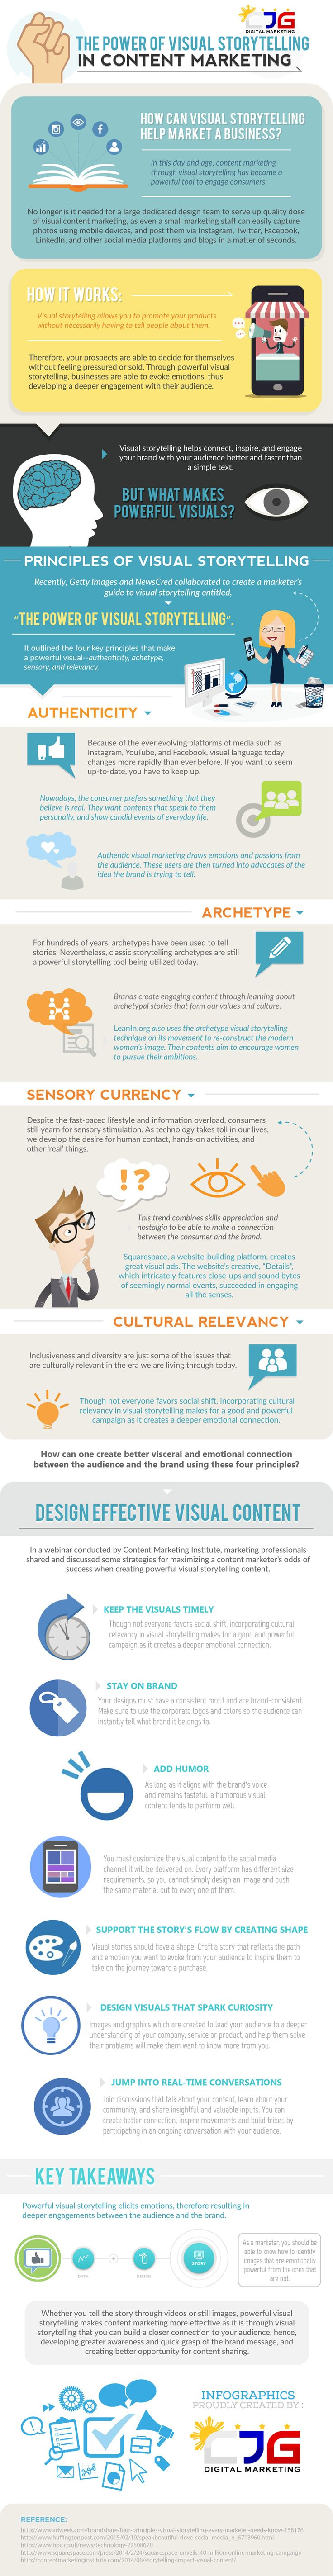 The Power of Visual Storytelling in Content Marketing (Infographic) - An Infographic from CJG Digital Marketing